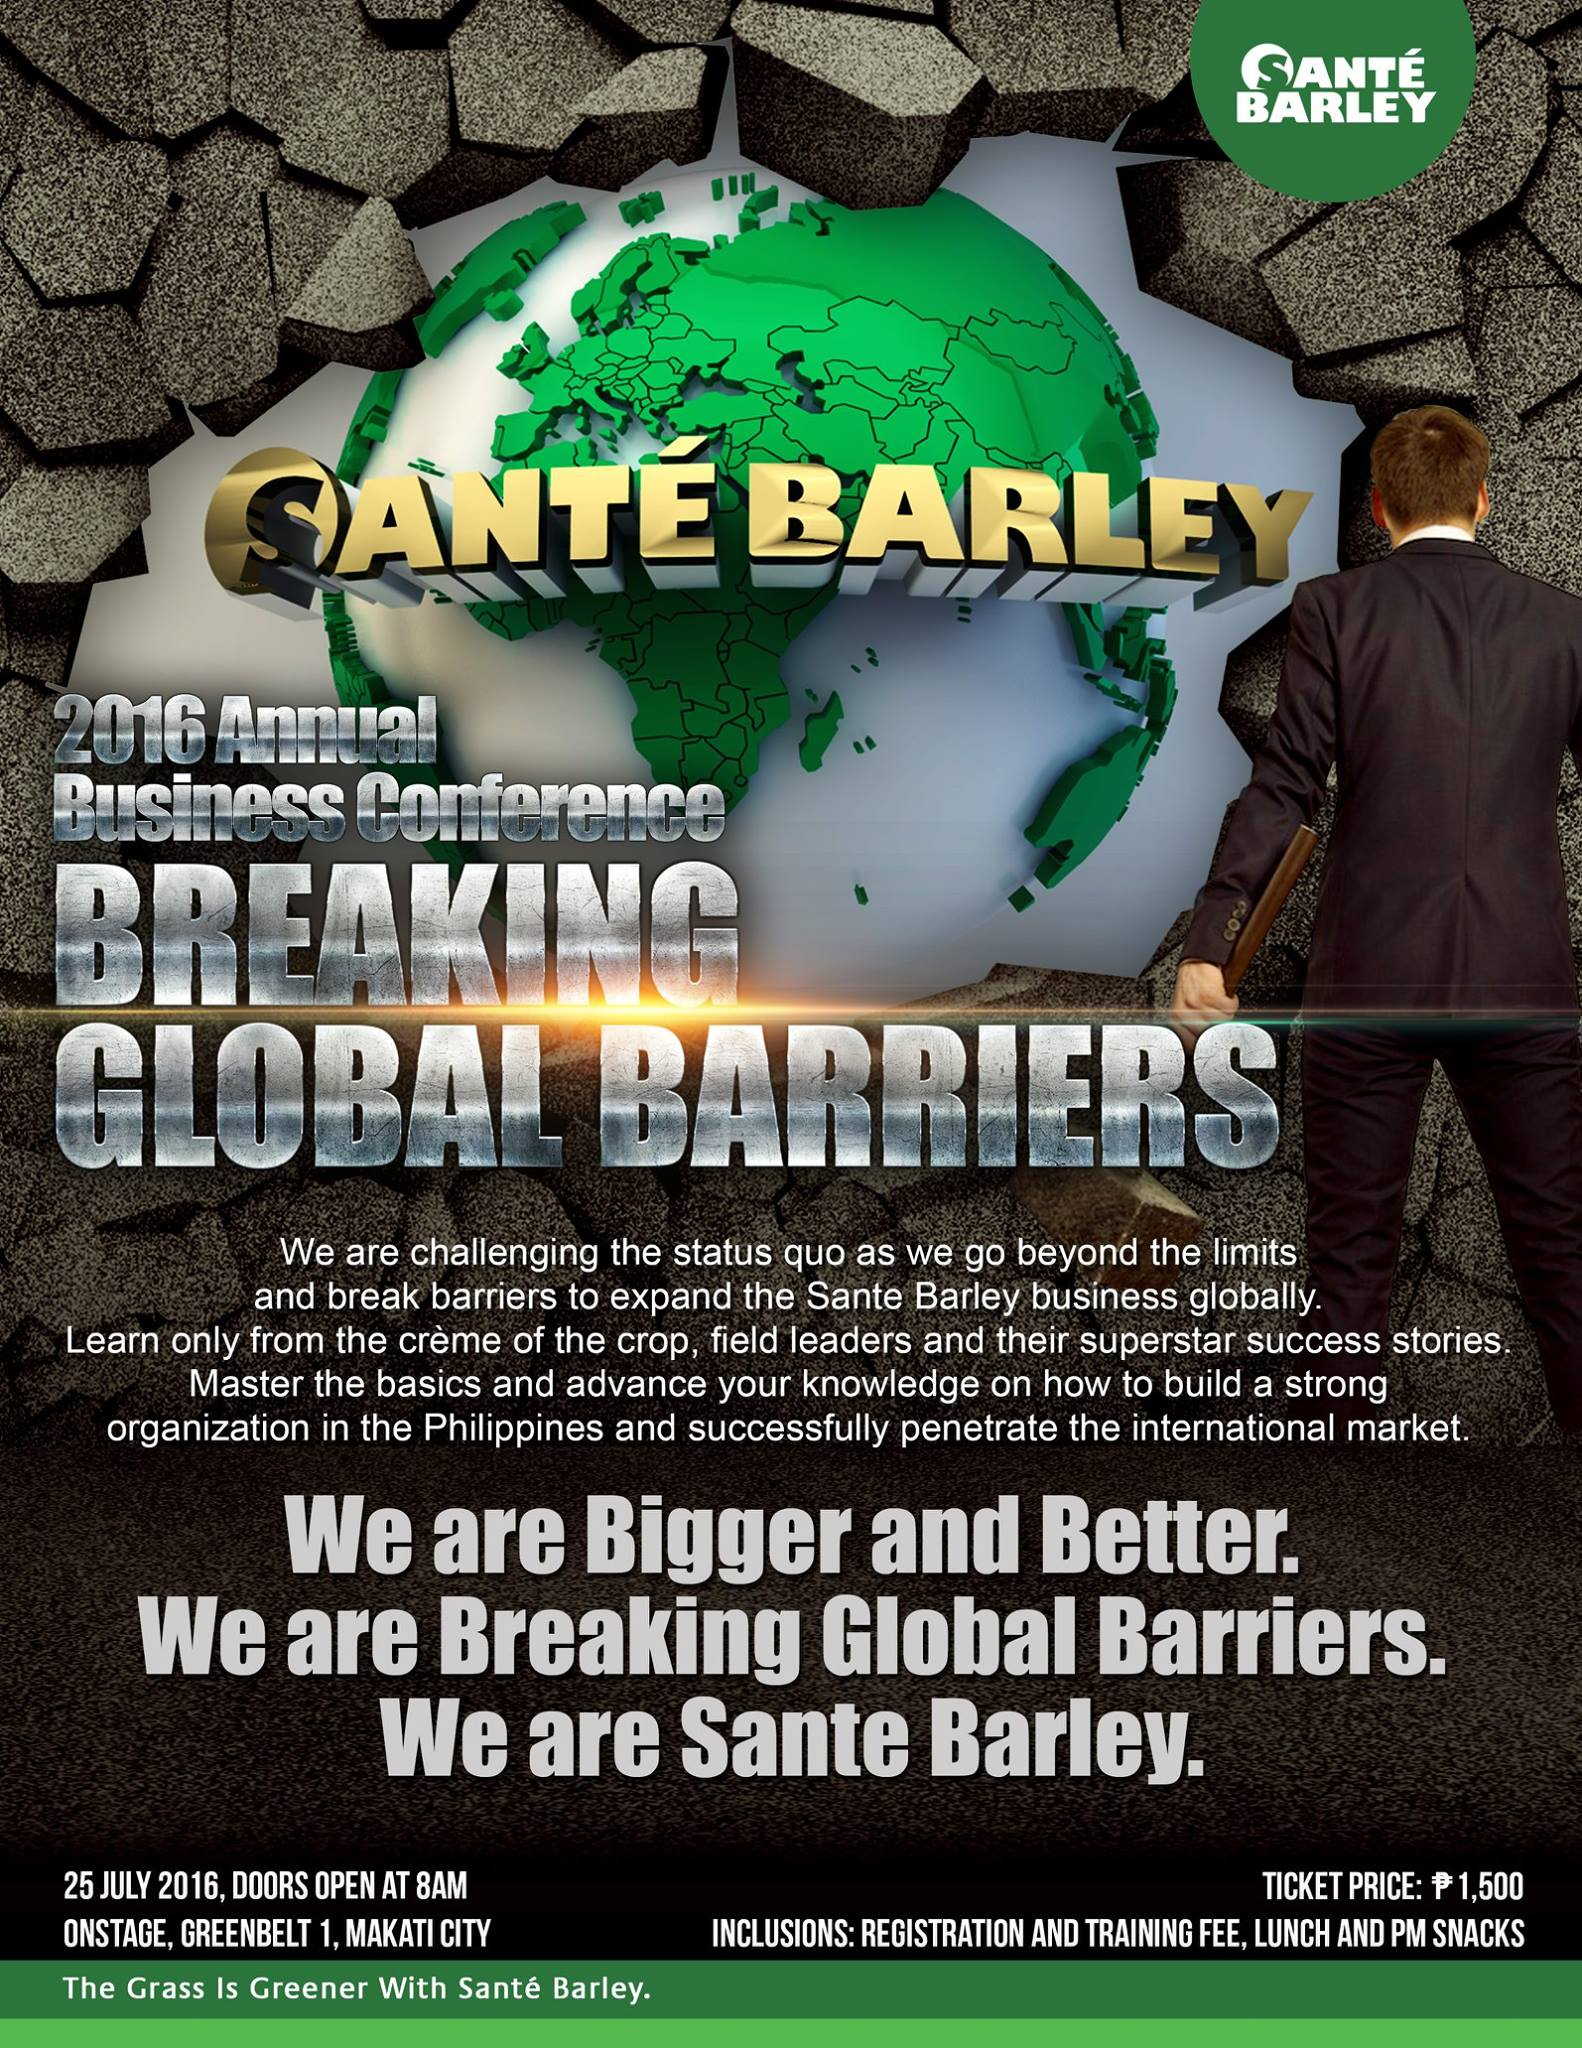 2016 Annual business Conference - Breaking Global Barriers